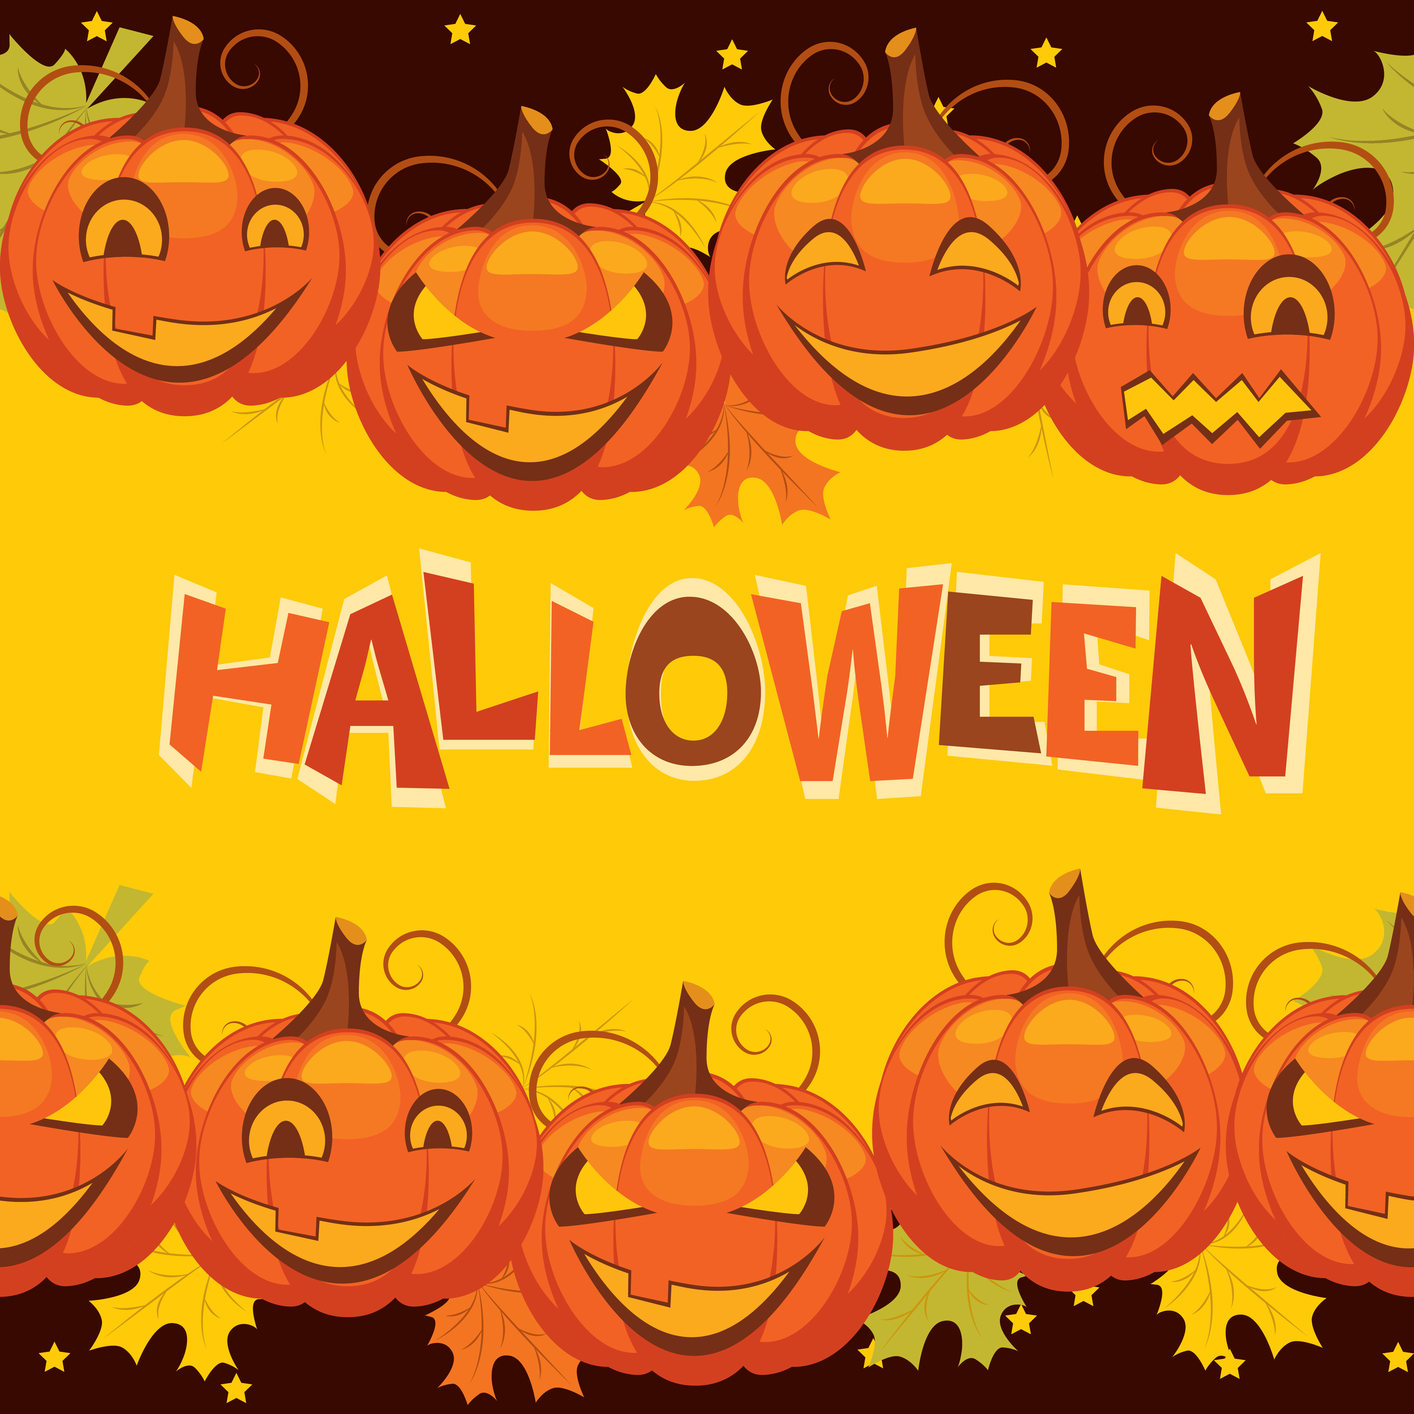 16 Free Halloween Vector Art Images